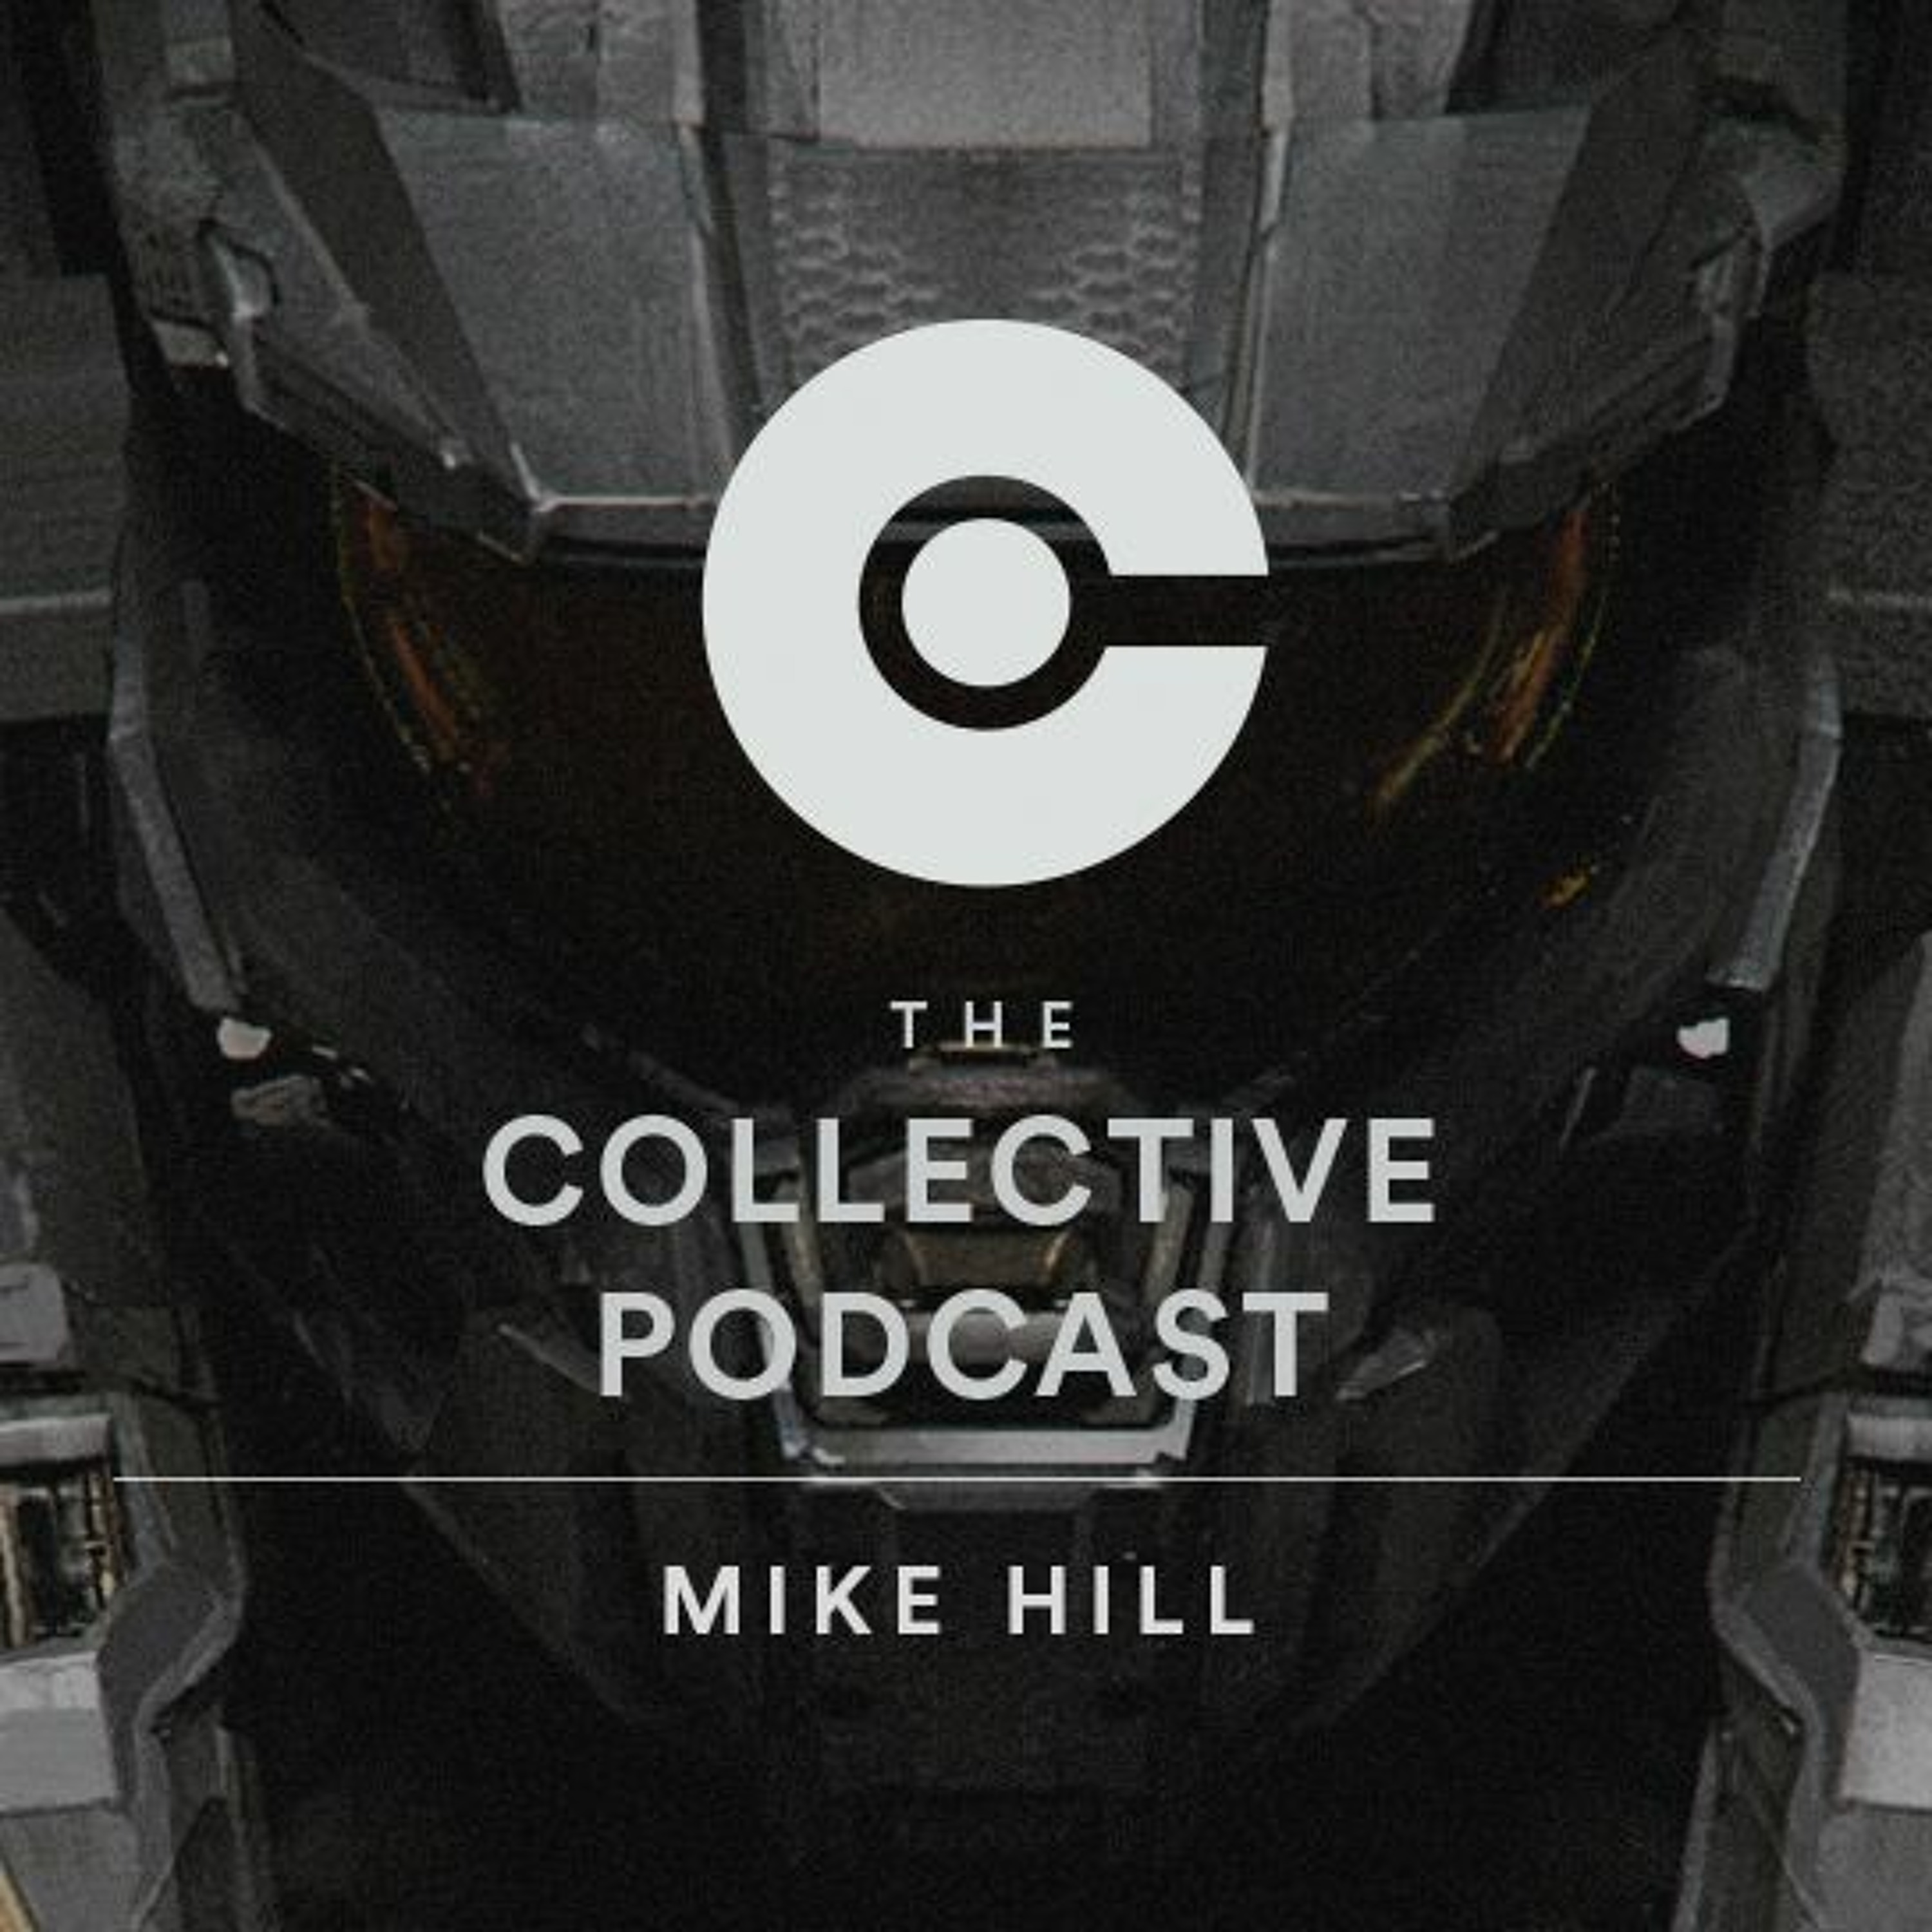 Ep. 220 - Mike Hill